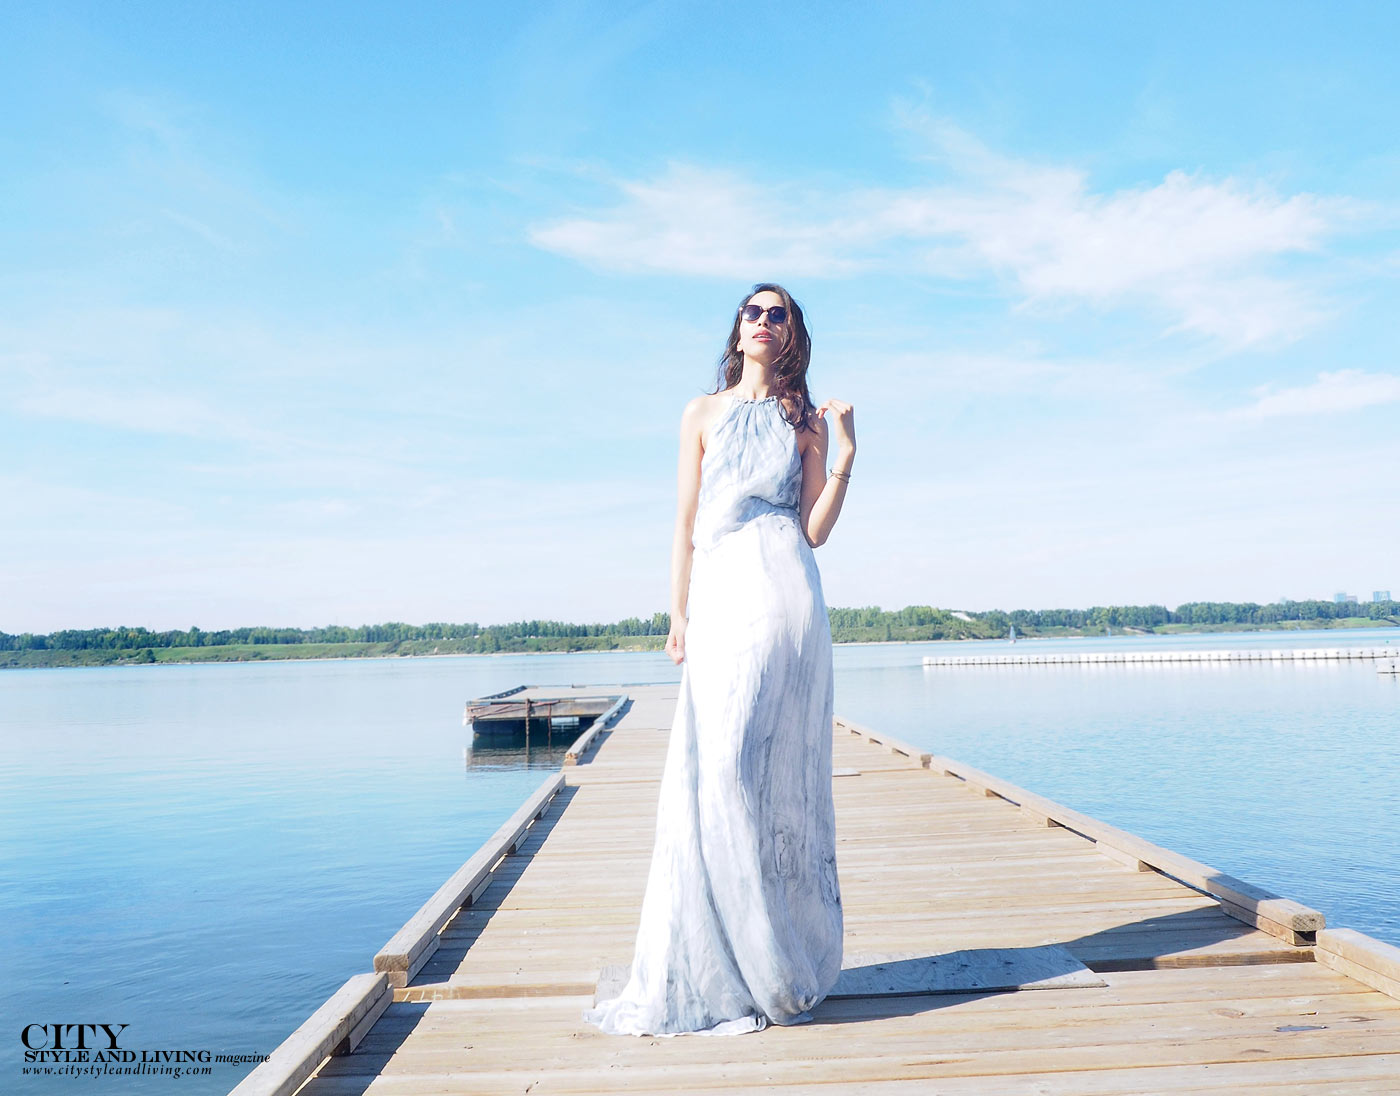 The Editors Notebook calgary fashion blogger wearing a maxi dress at glenmore resevoir boardwalk closeup